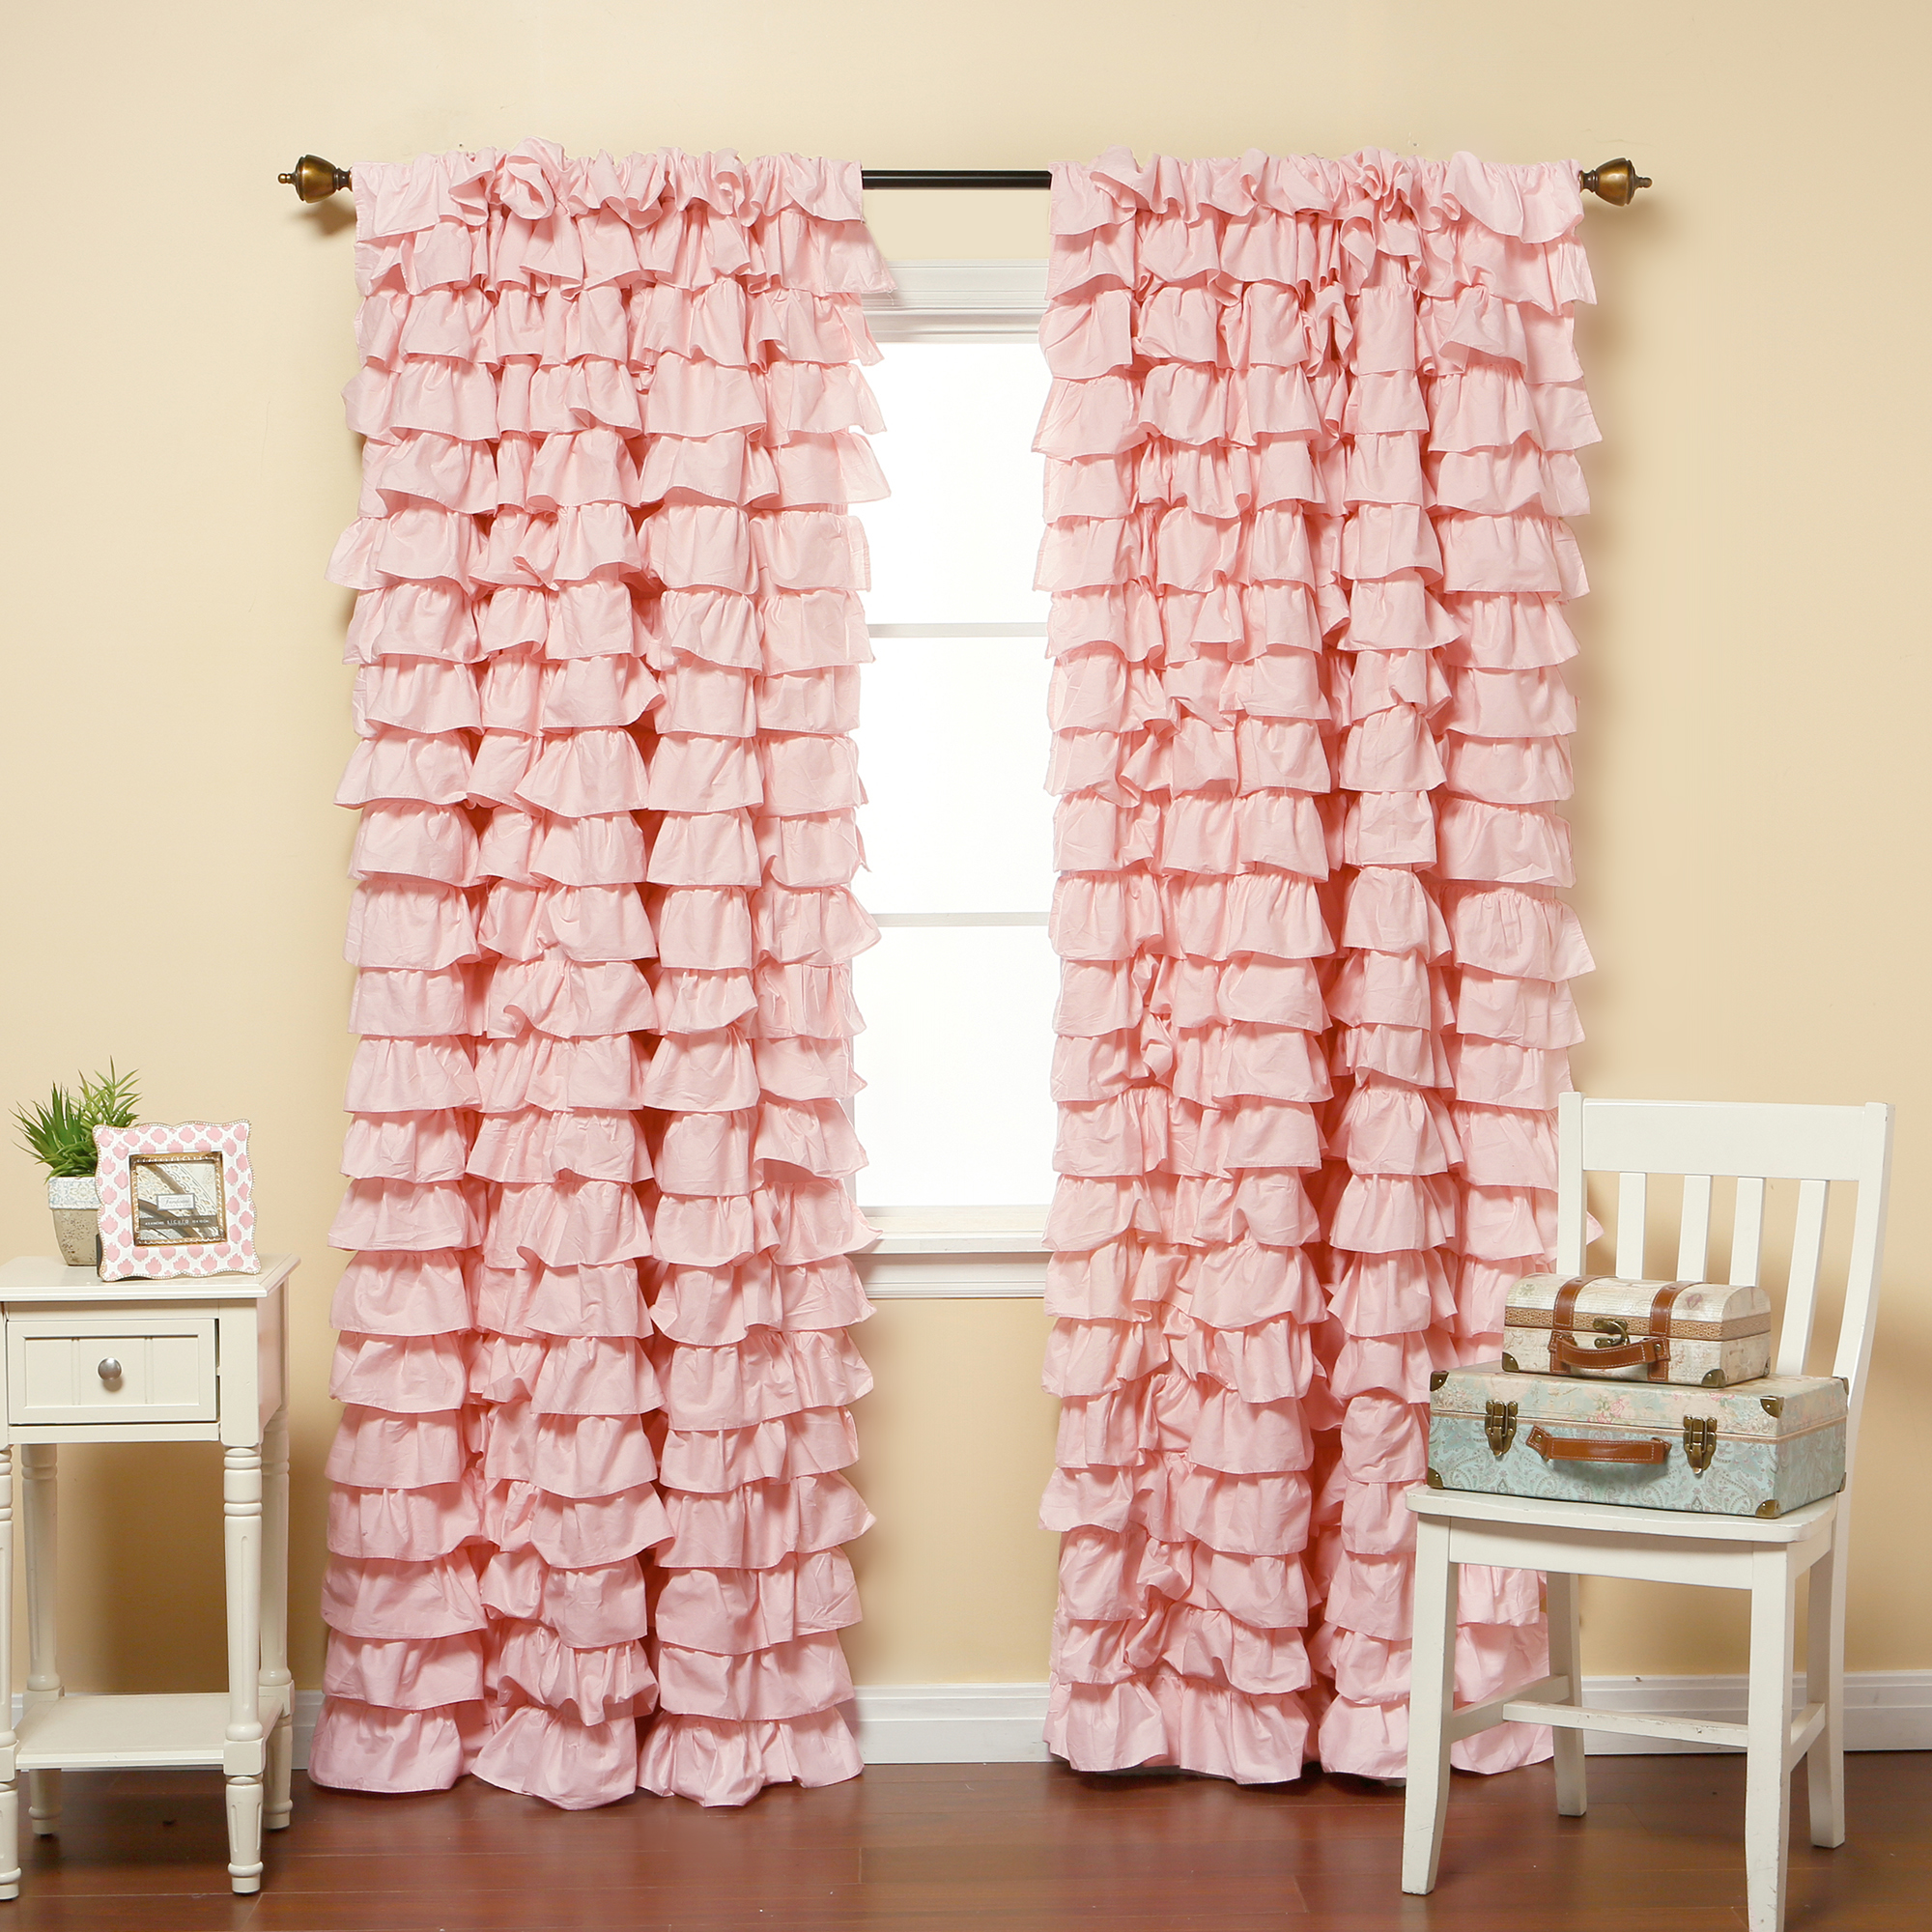 Ruffled Drapes | Blackout Curtains Nursery | Ruffle Blackout Curtains